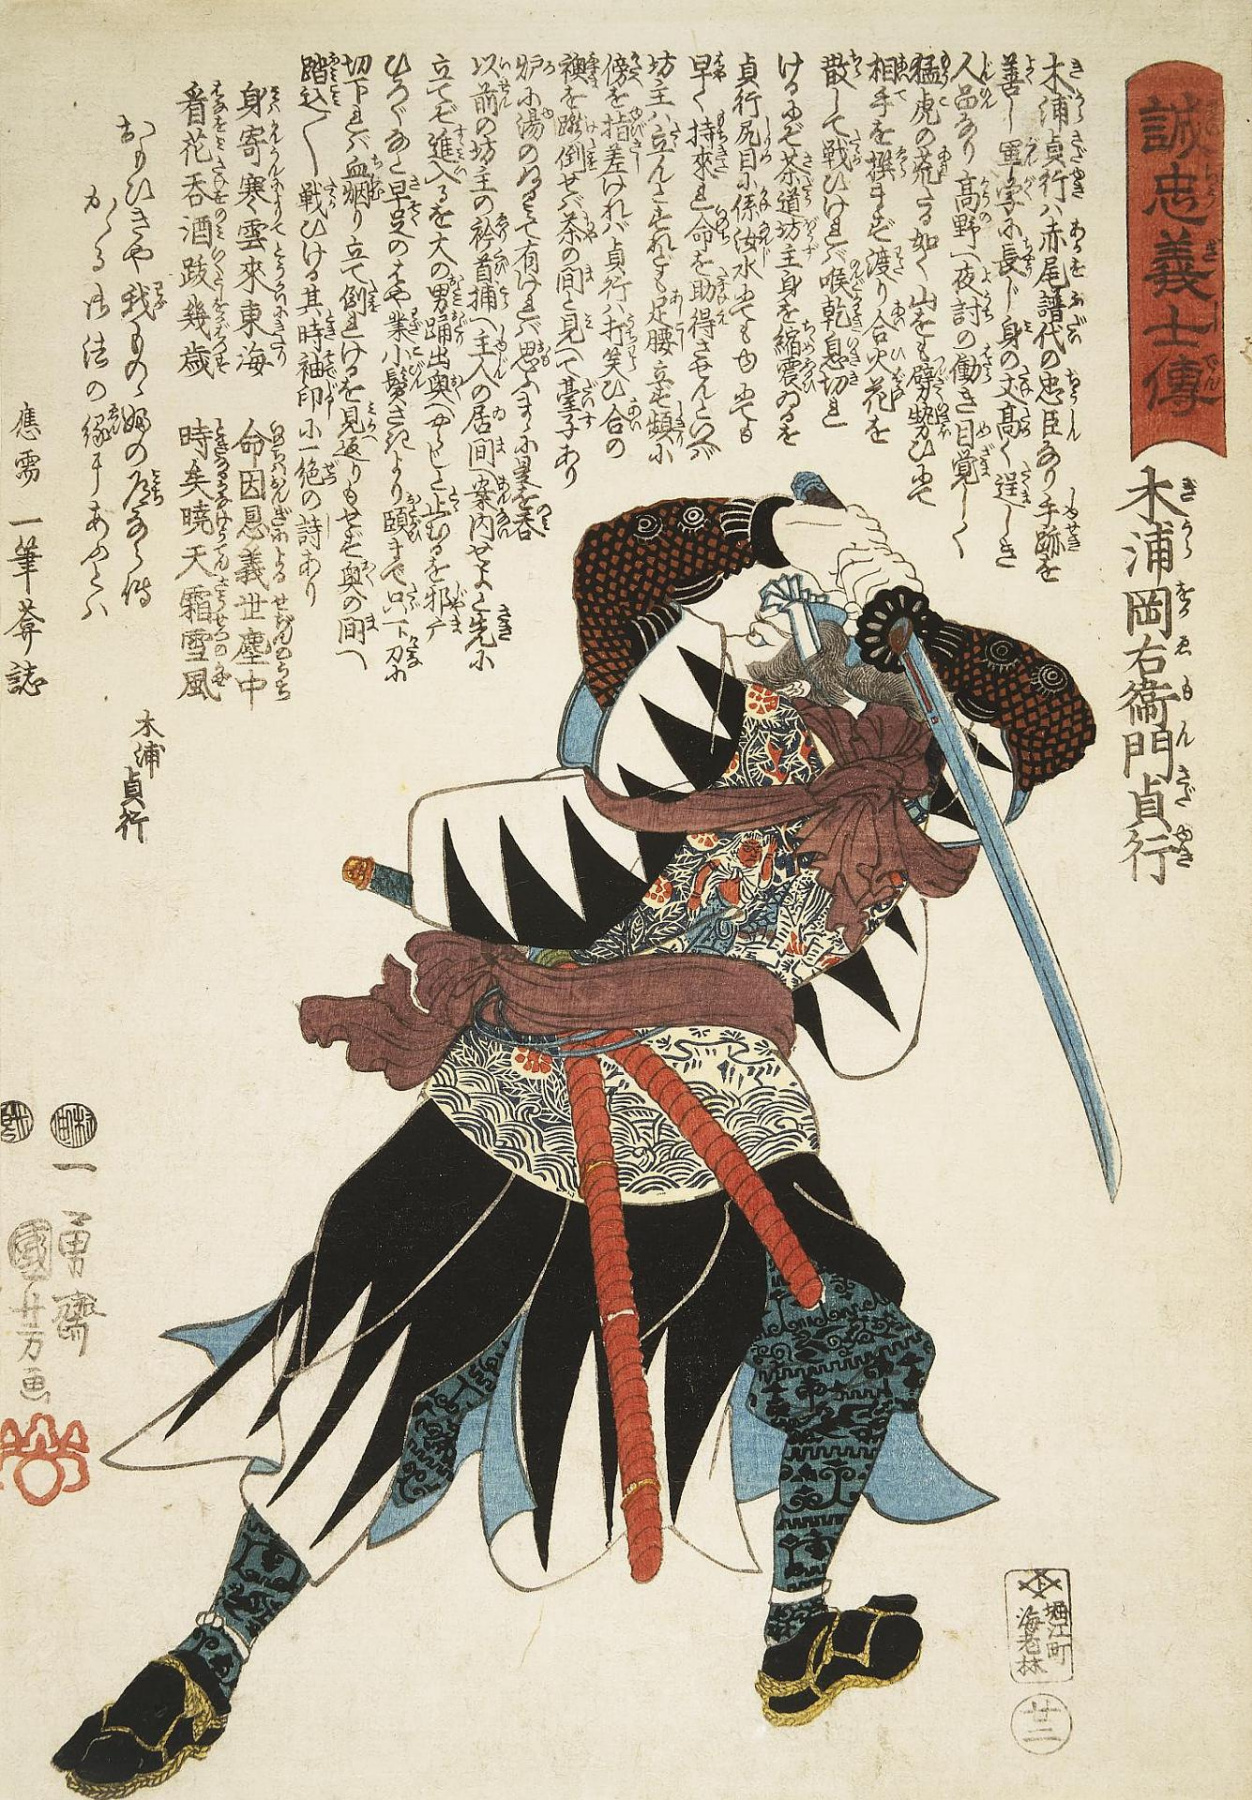 Utagawa Kuniyoshi. 47 loyal samurai. Kiara Okemon Sadayuki lunges, both hands gripping the hilt of the sword